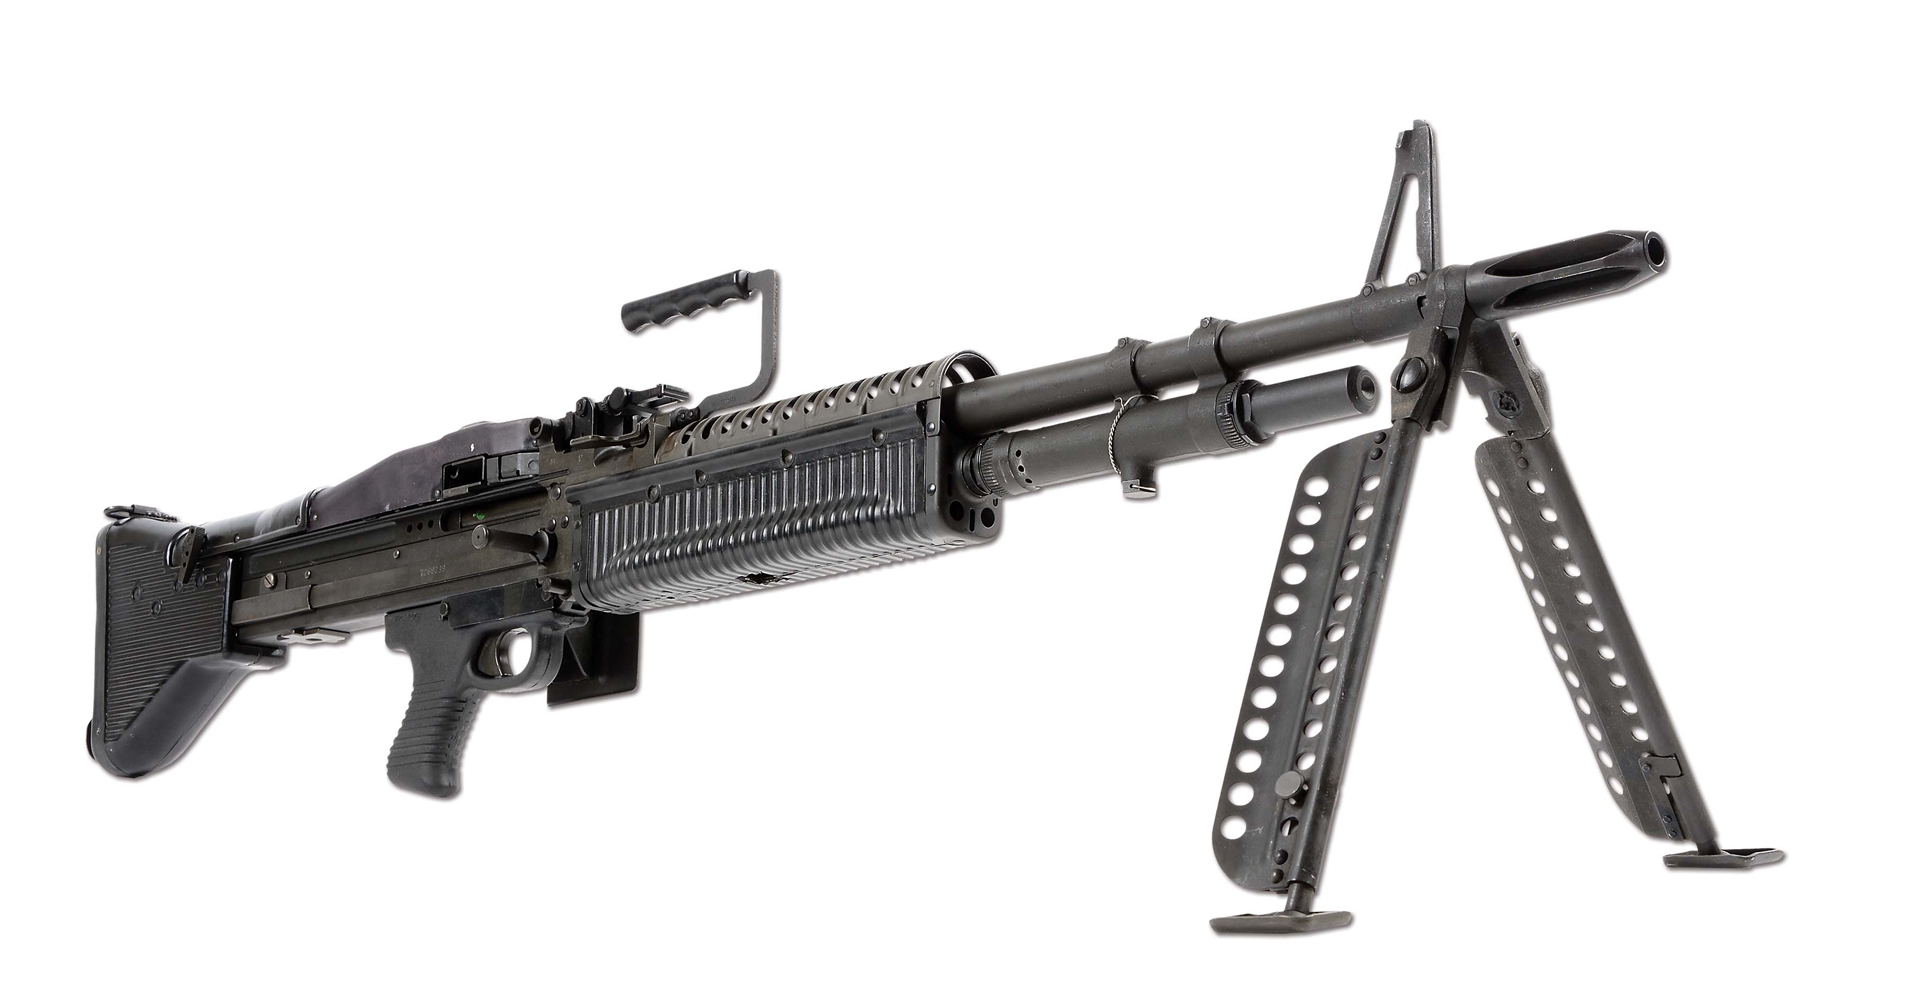 (N) MINTY & HIGHLY SOUGHT AFTER MAREMONT M60 MACHINE GUN WITH EXTRAS (FULLY TRANSFERABLE).